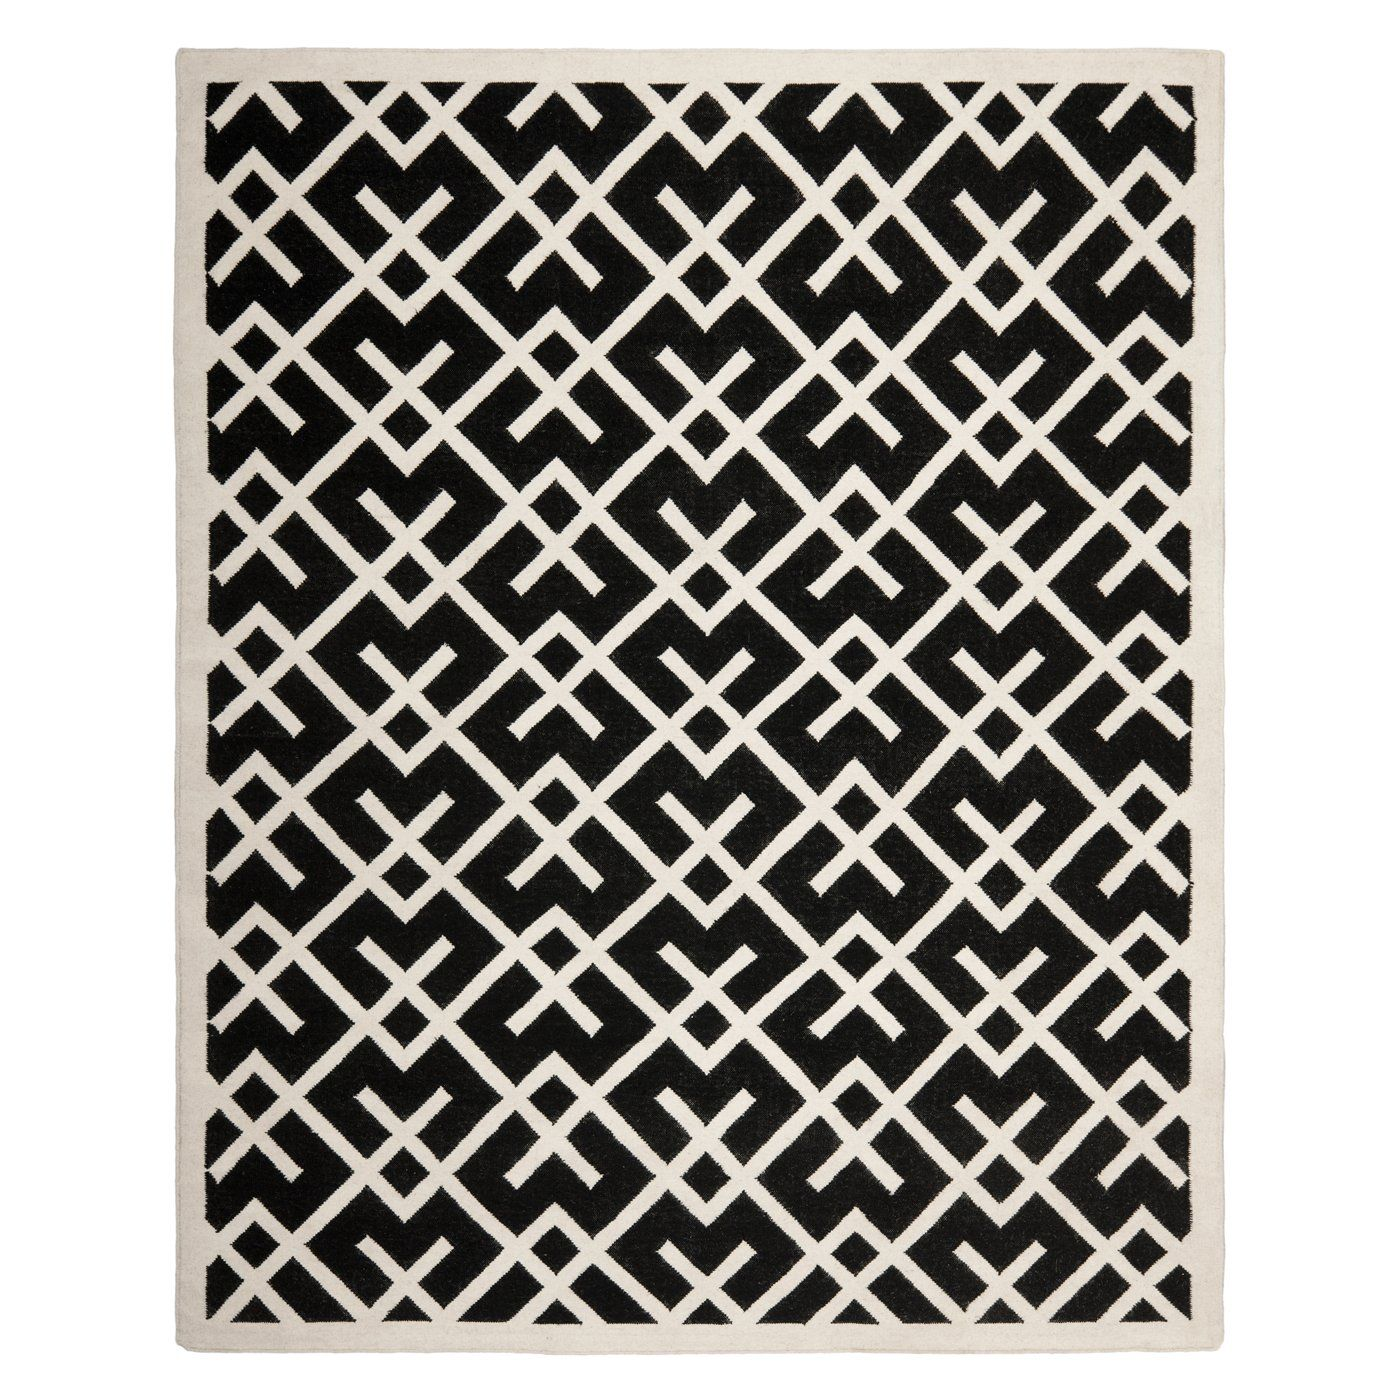 Shop Safavieh  DHU552L Dhurries Area Rug, Black / Ivory at Lowe's Canada. Find our selection of area rugs at the lowest price guaranteed with price match + 10% off.